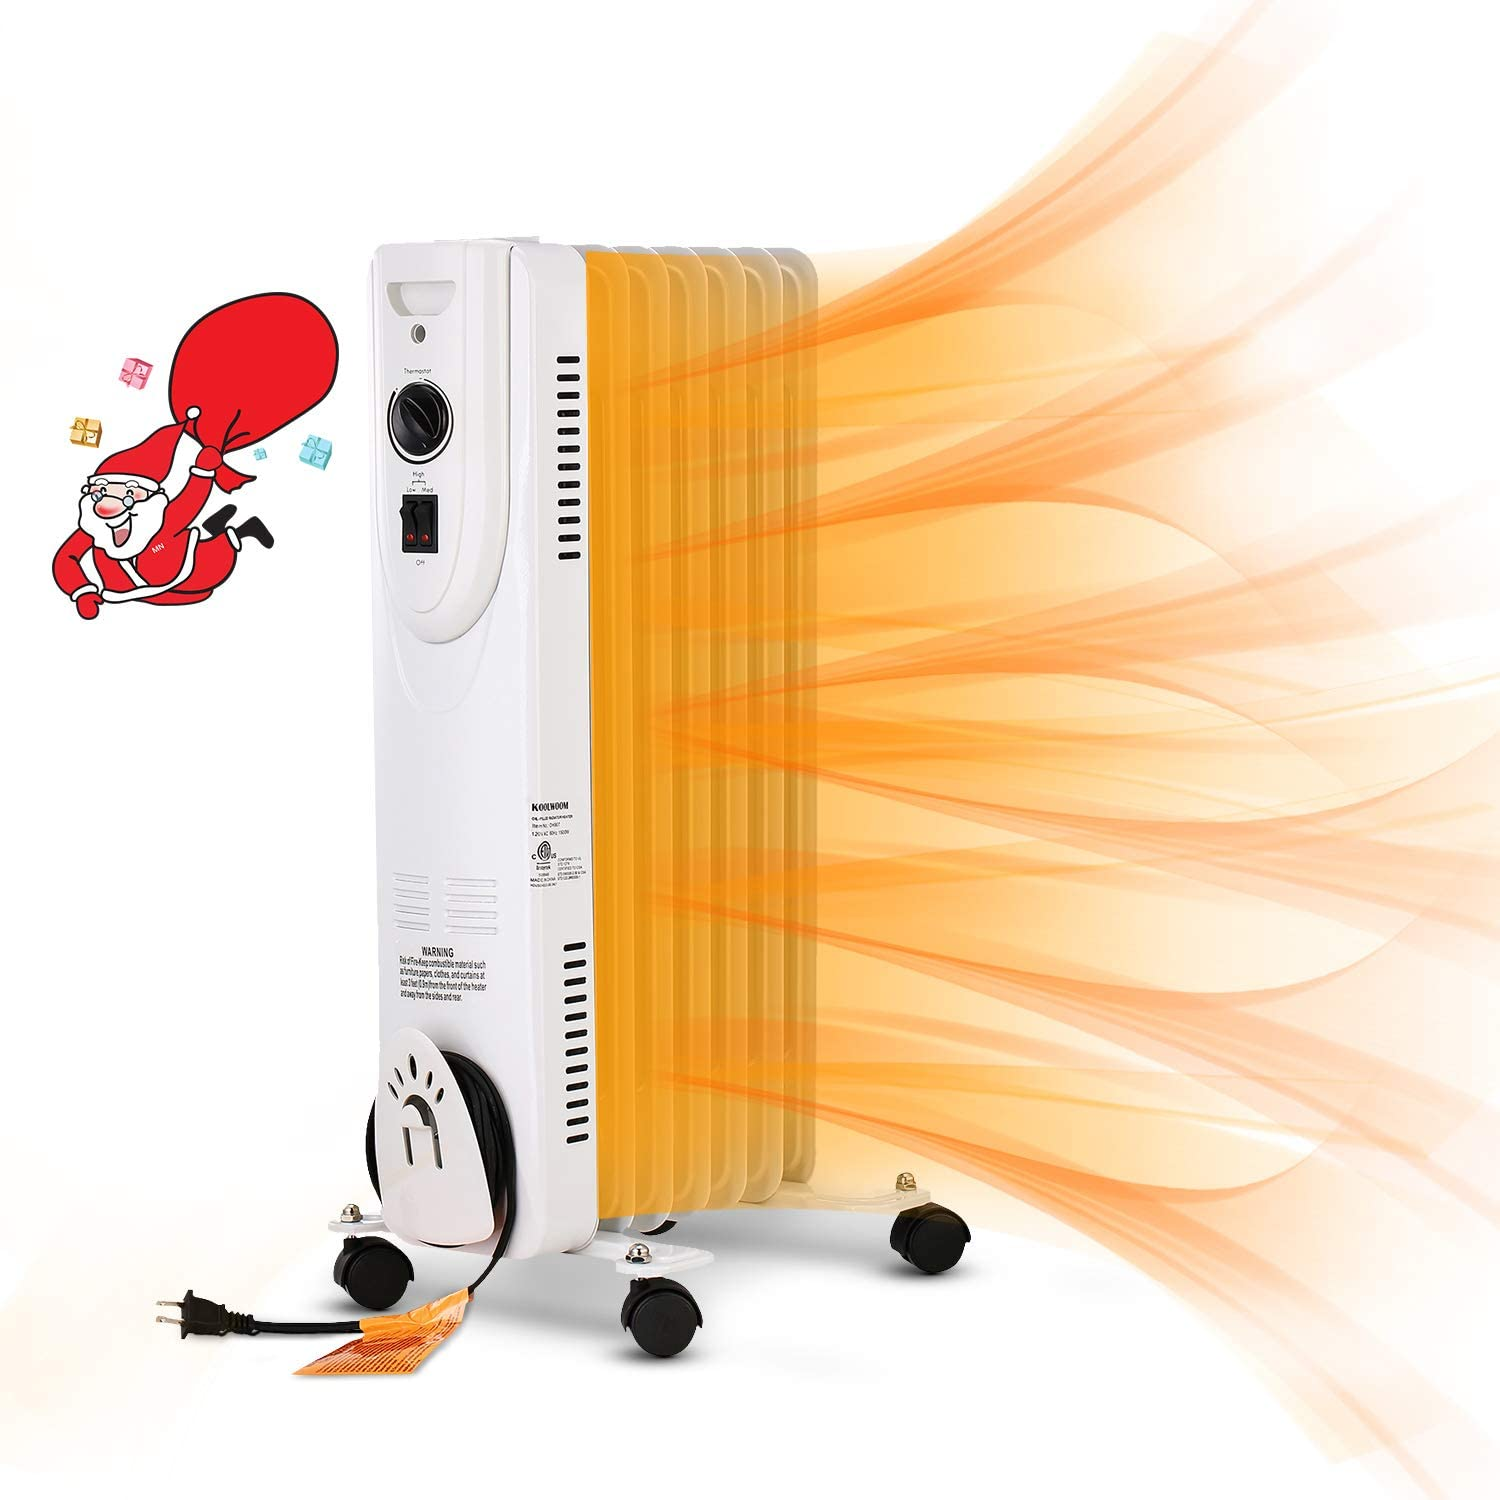 OVASTLKUY Space Heater Oil Oklahoma City Mall Radiator Tip-Over Manufacturer direct delivery 1500W Filled